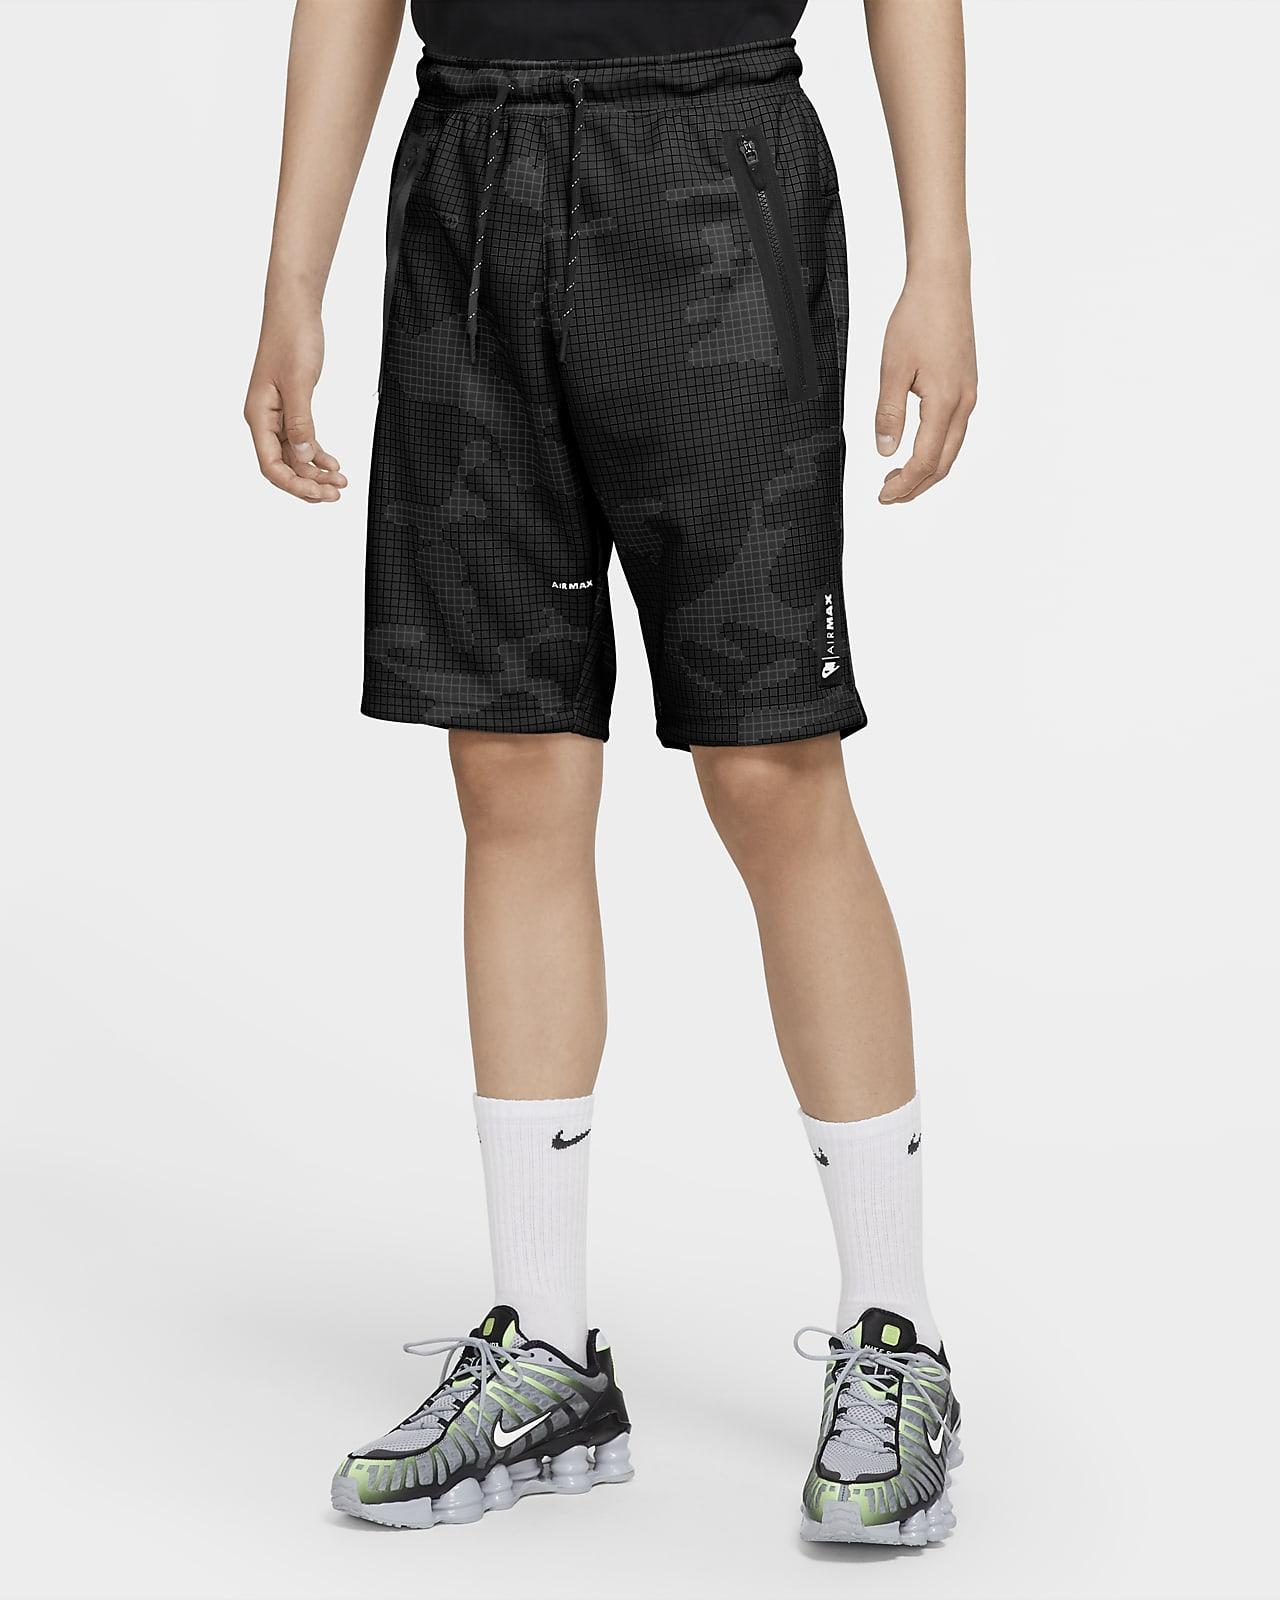 Nike Sportswear Air Max Men's Shorts